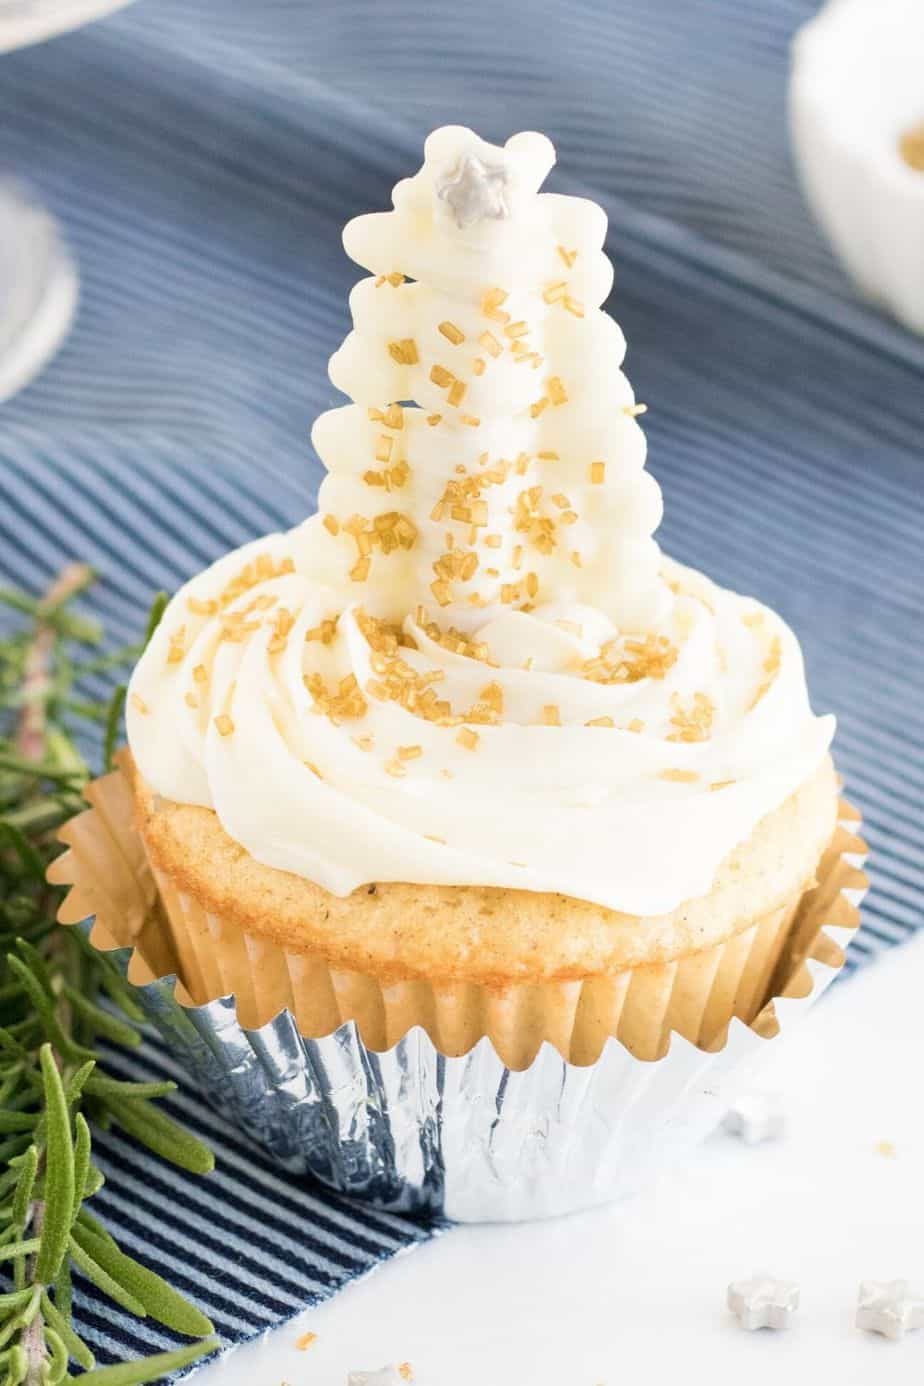 Satisfy your yuletide sweet tooth with these elegant Christmas Tree Cupcakes. This easy Christmas dessert recipe is perfect for your holiday spread. White Chocolate and pretzel sticks make the pretty glittering Christmas tree topper. #christmascupcake #cupcakerecipe #dessert